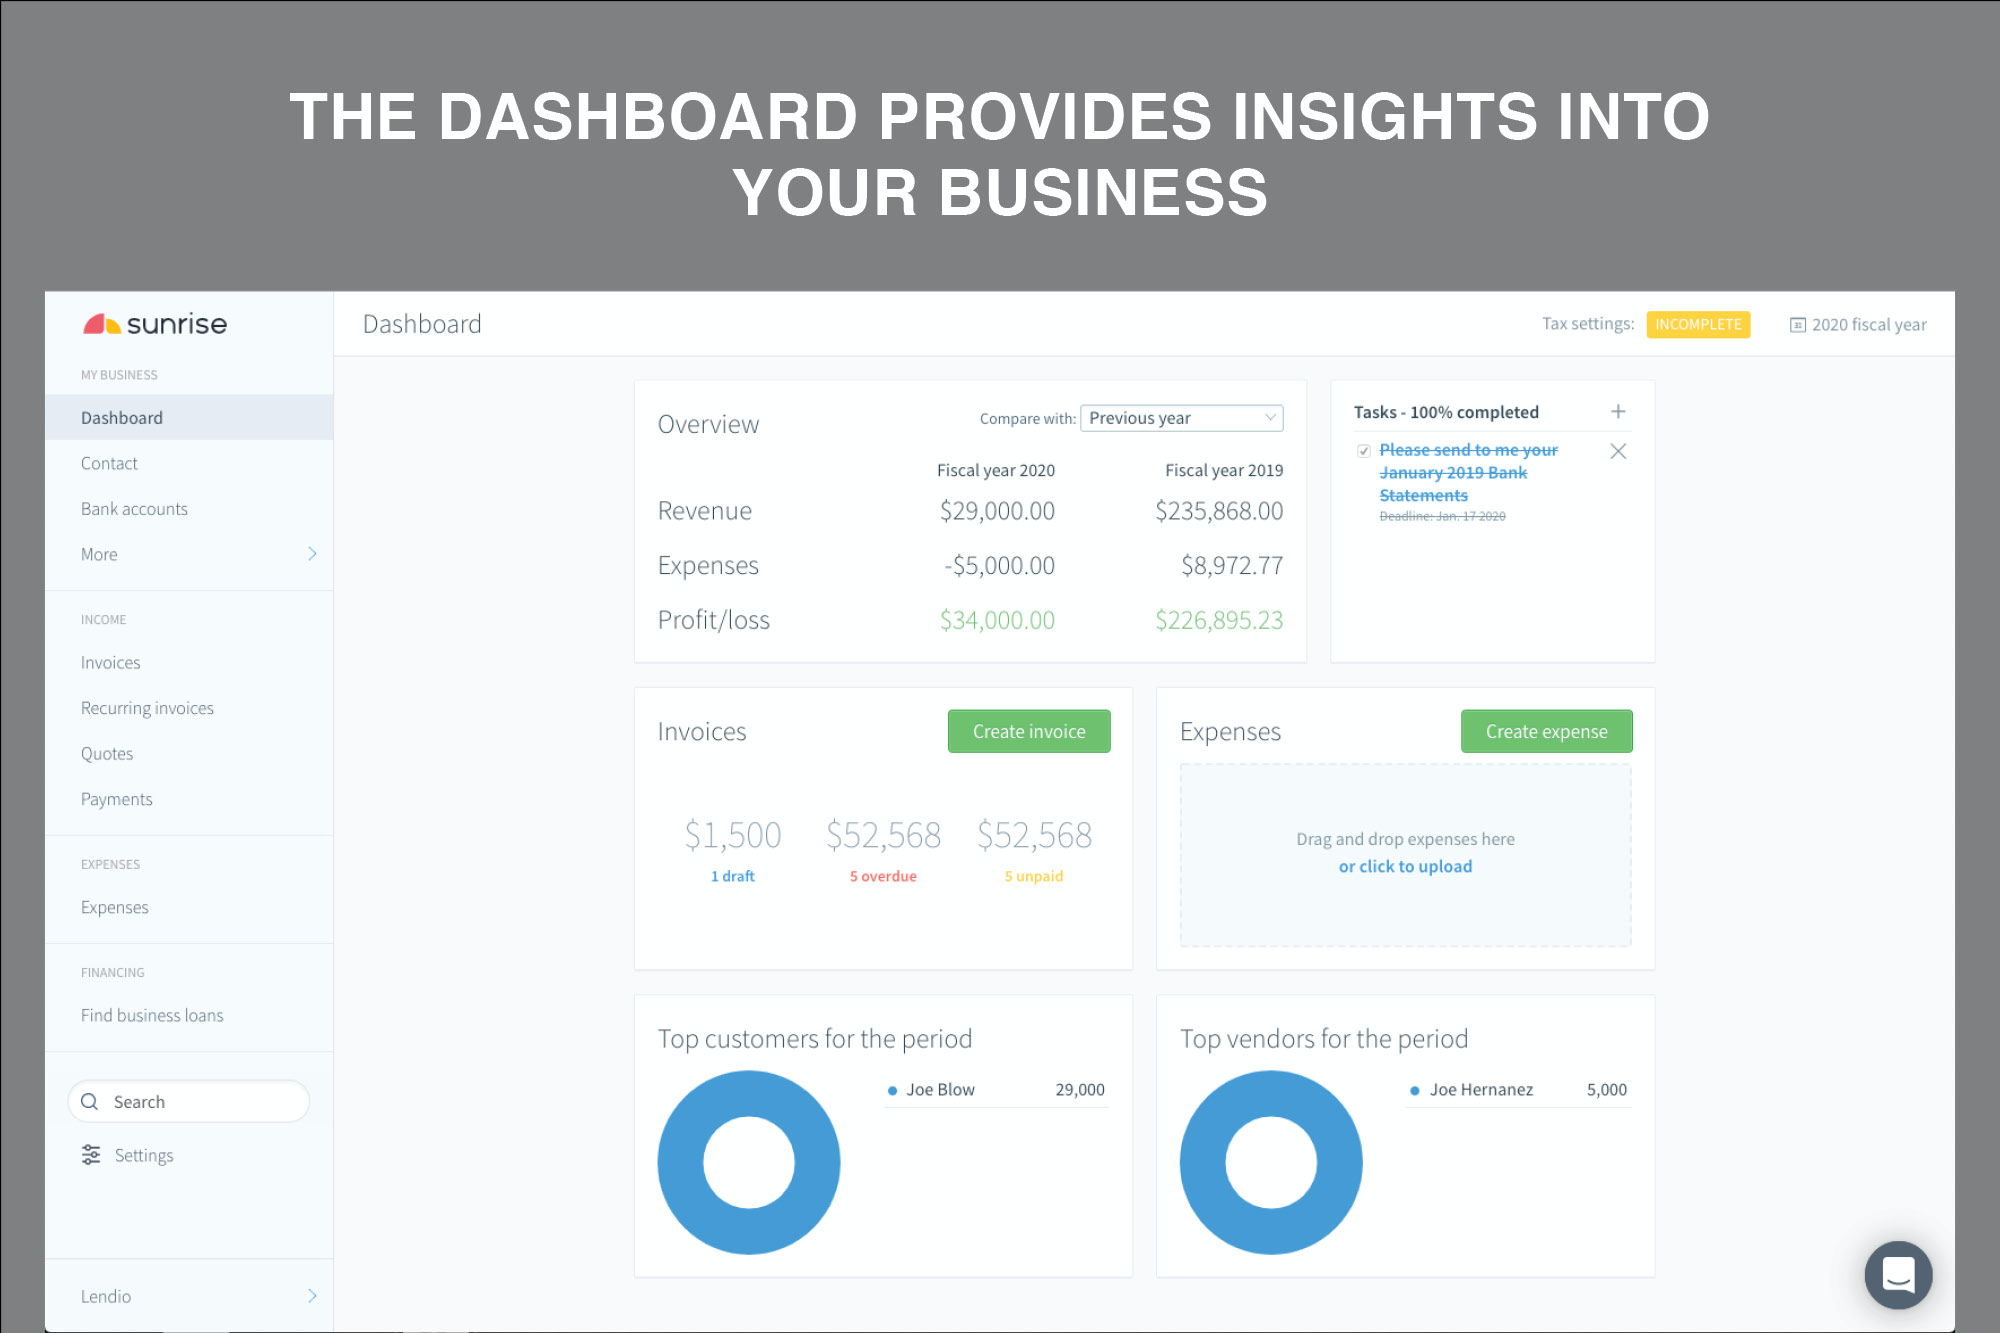 The dashboard provides insights into your business.